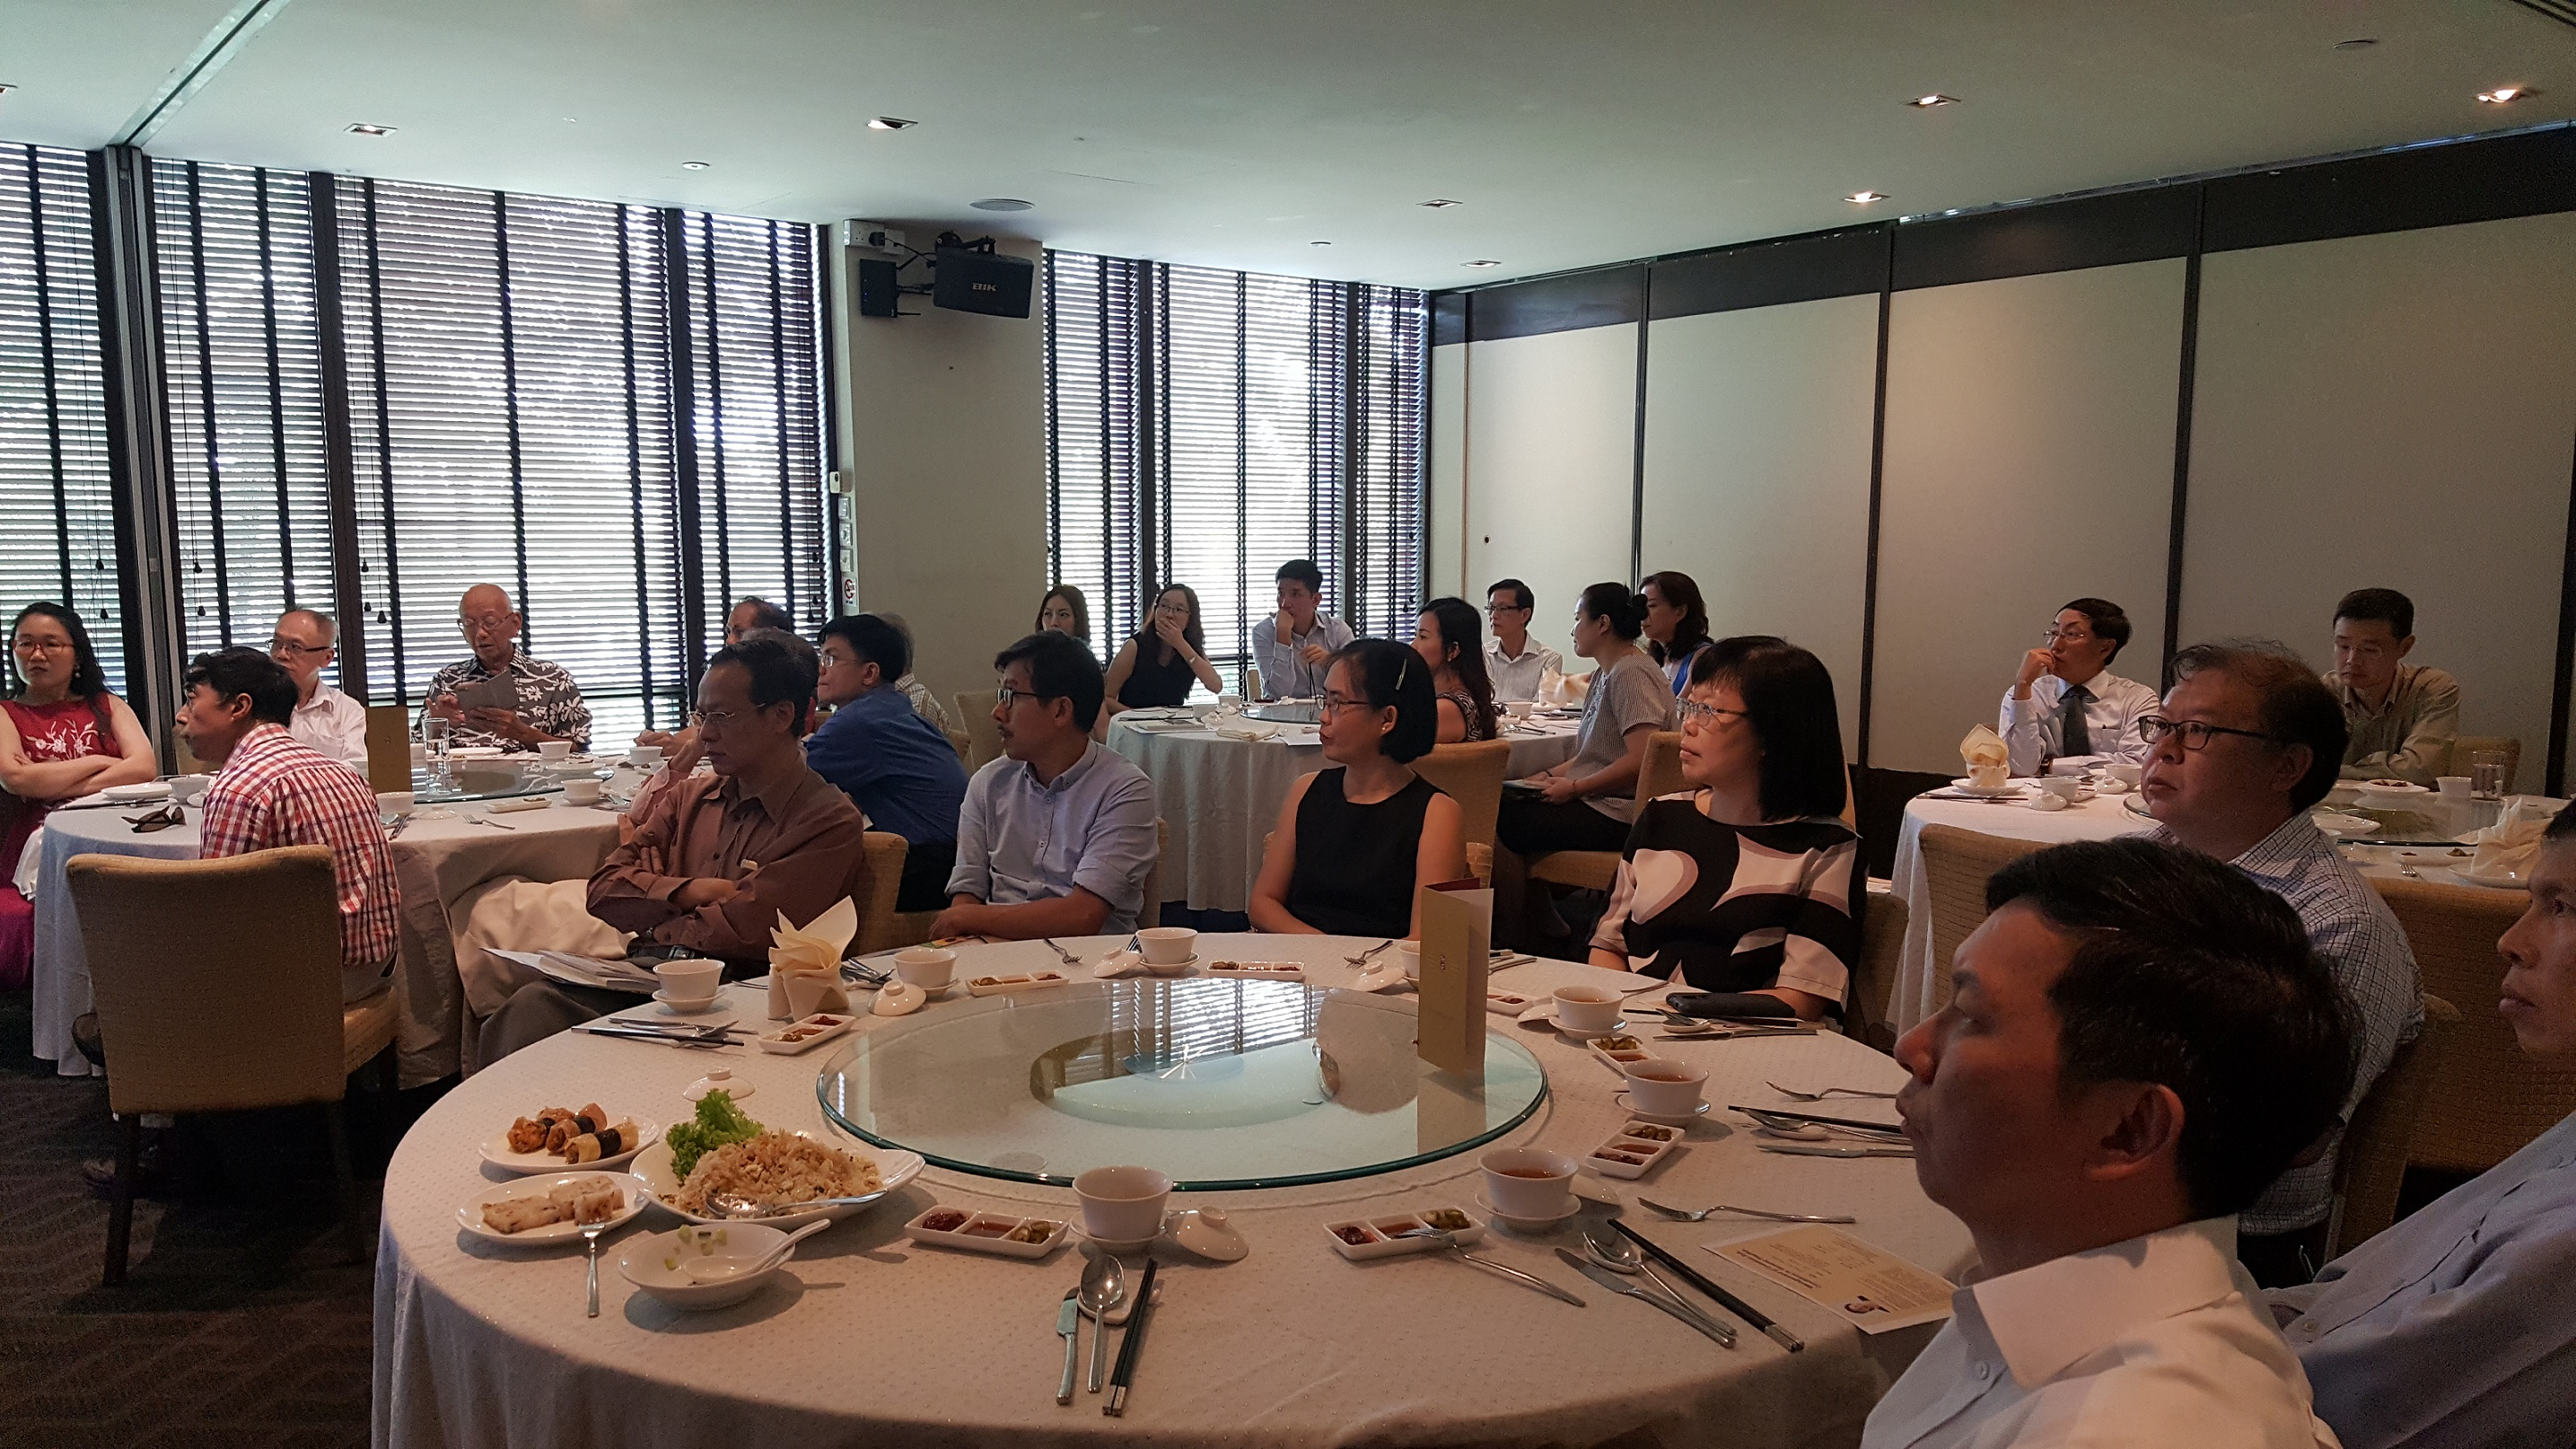 Participants listening attentively to the talk conducted by Dr Au Eong Kah Guan during a lunch-time continuing medical education programme in Peach Garden in Orchid Country Club on 3 November 2017.